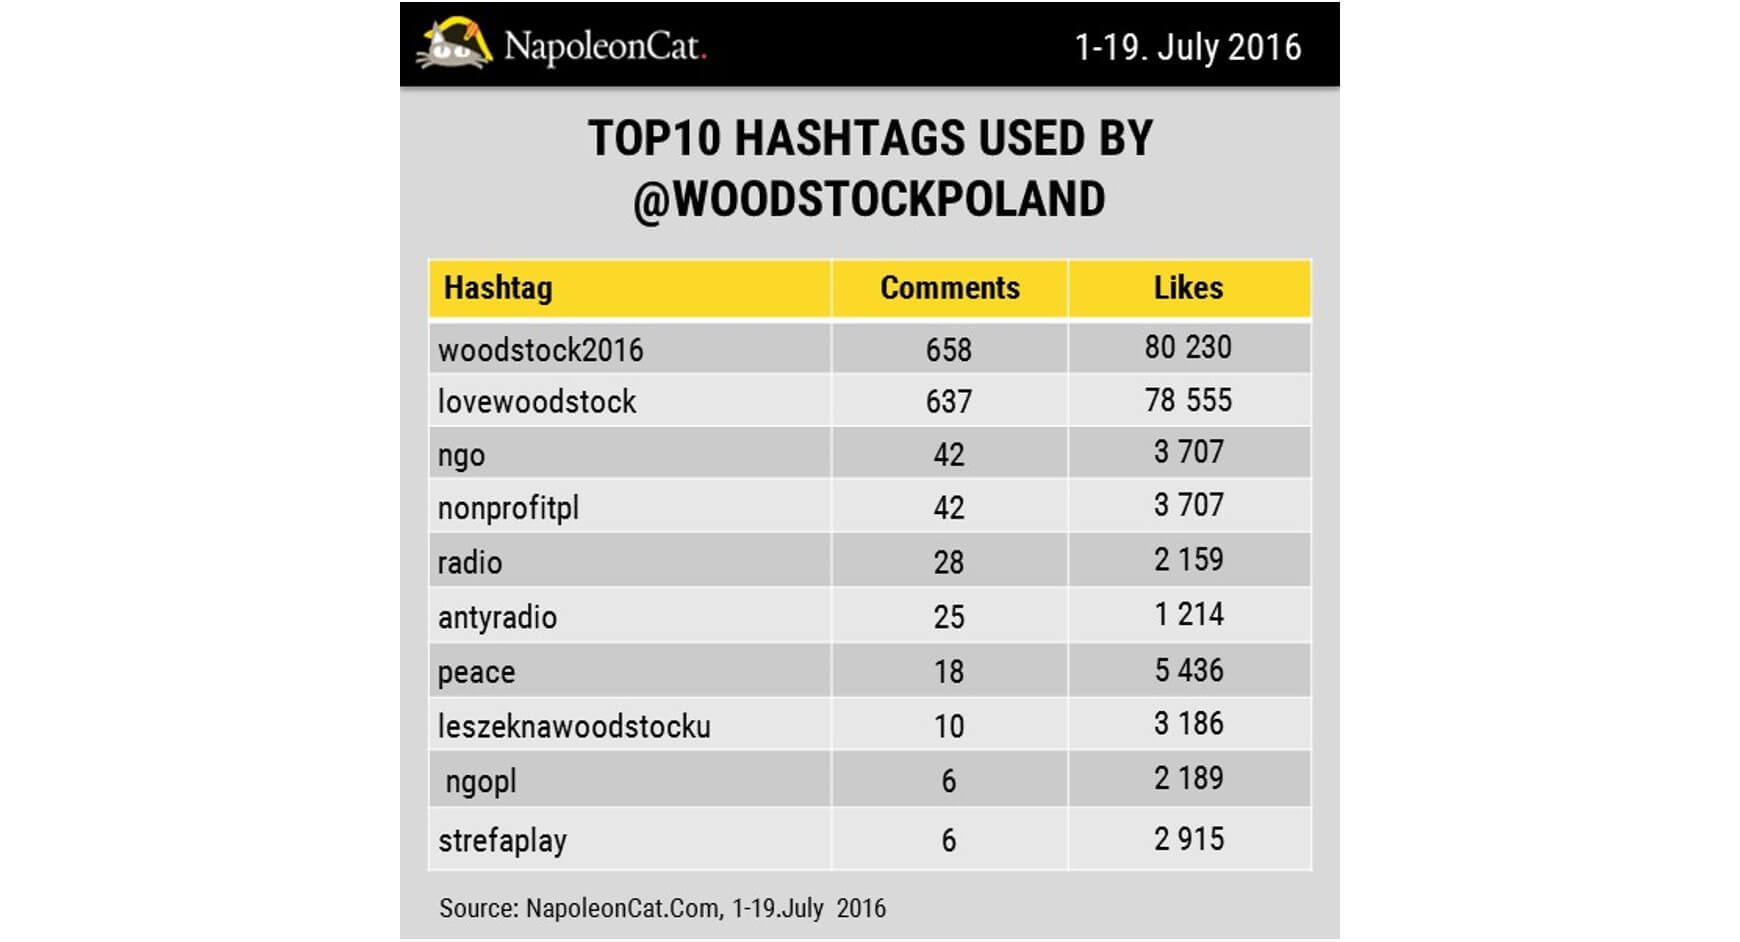 top10 hashtags used by woodstockpoland Instagram profile_1-19.07.2016_NapoleonCat.com blog